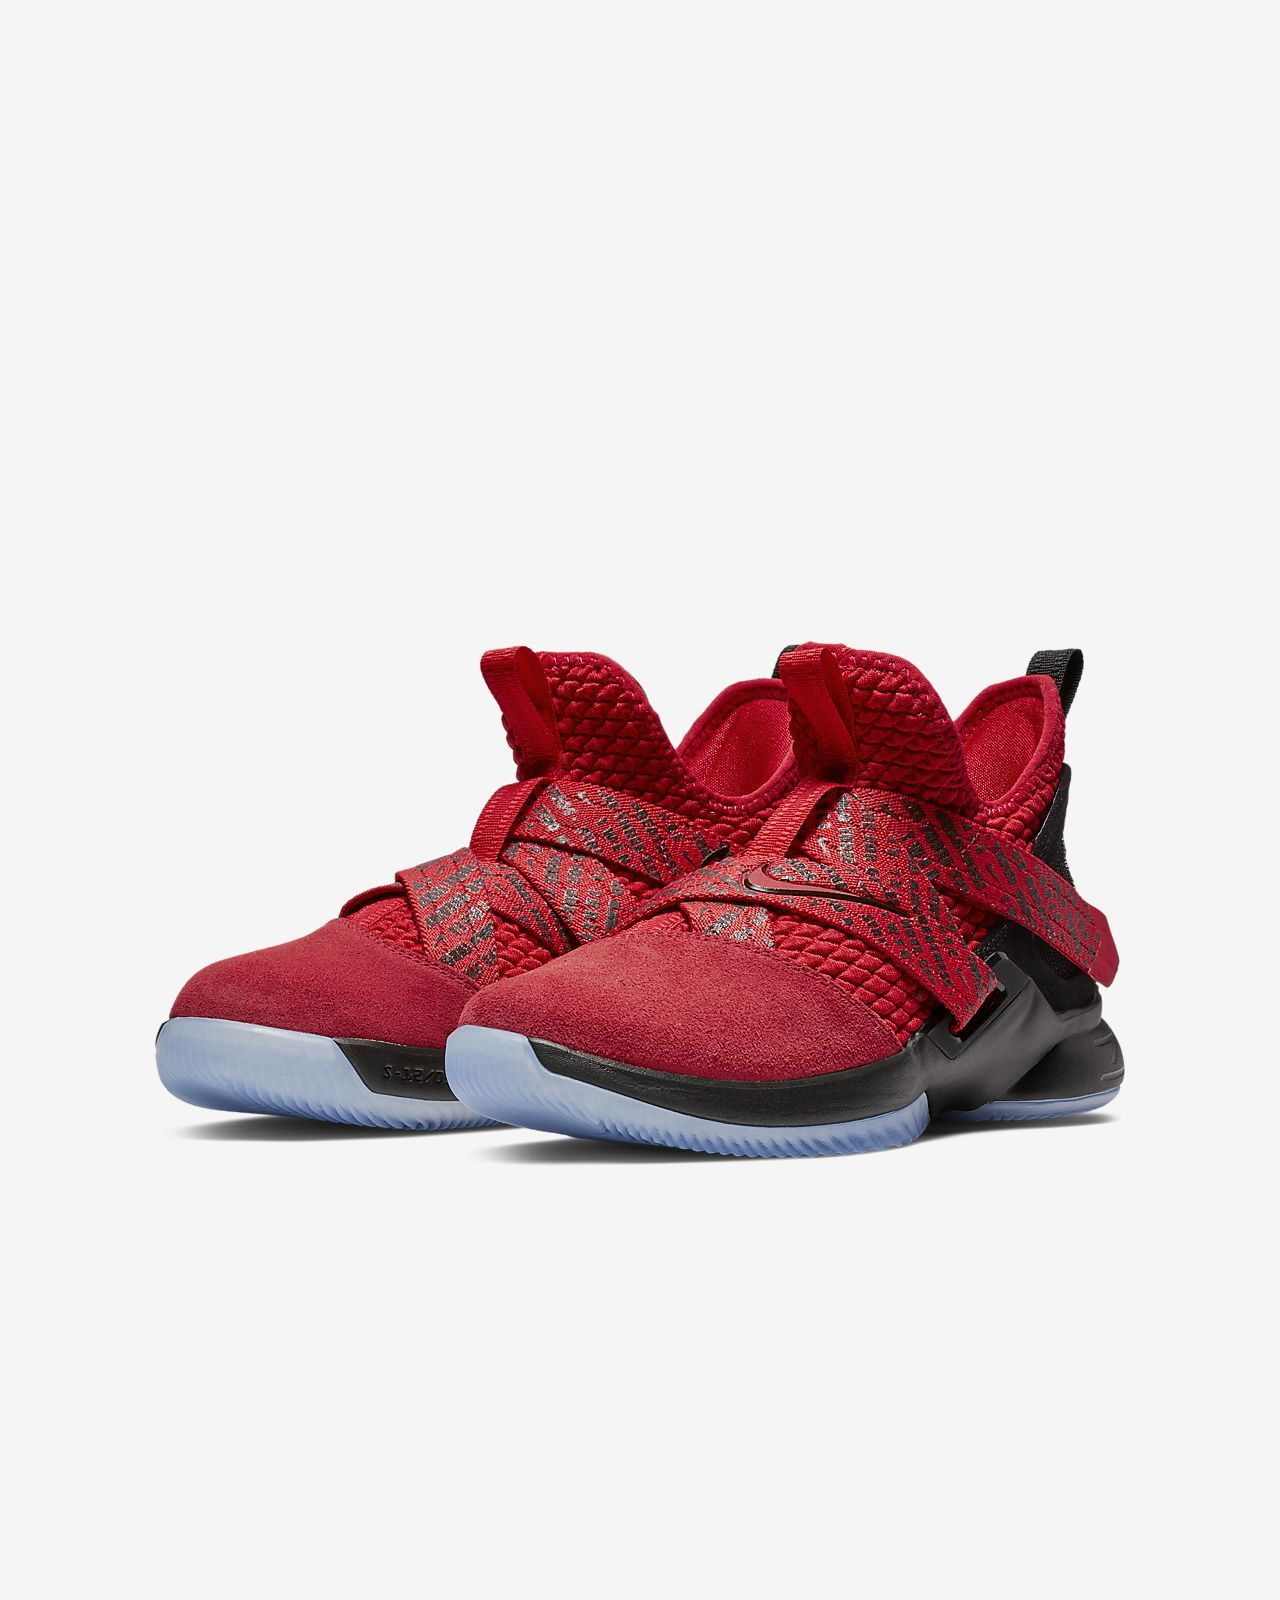 a4045808eae3 LeBron Soldier XII Big Kids  Basketball Shoe in 2019